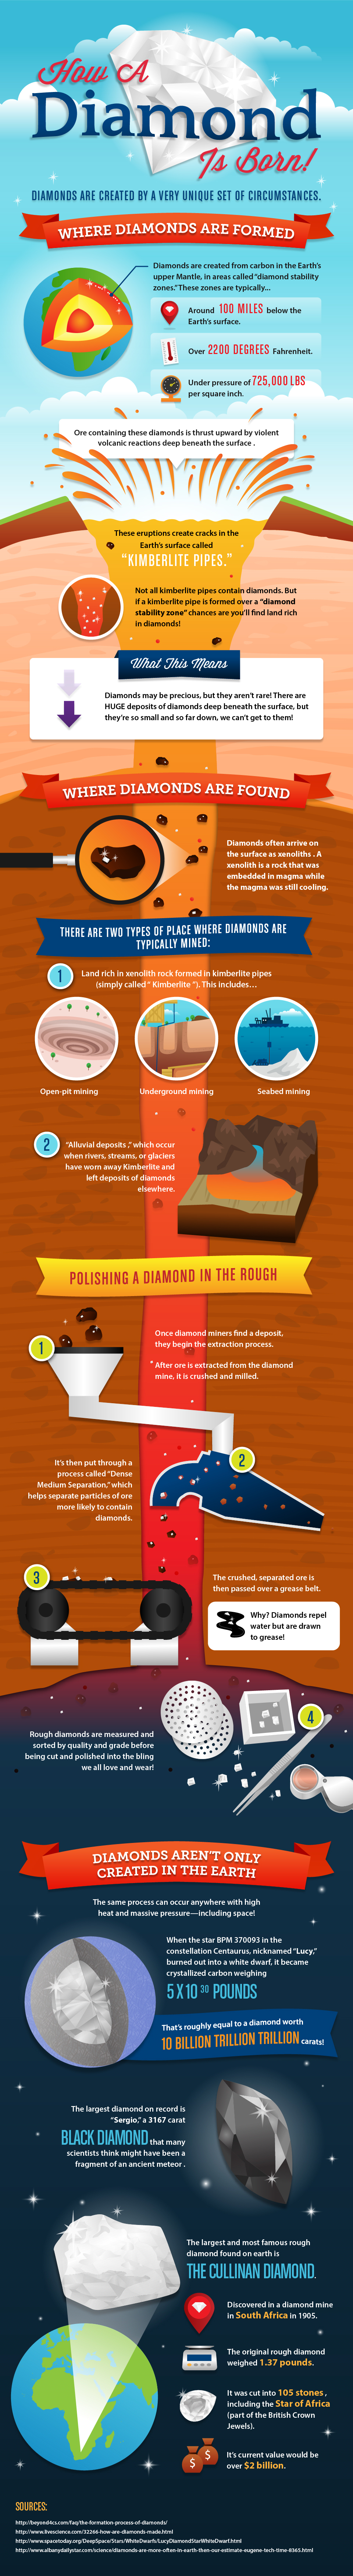 How a Diamond is born infographic